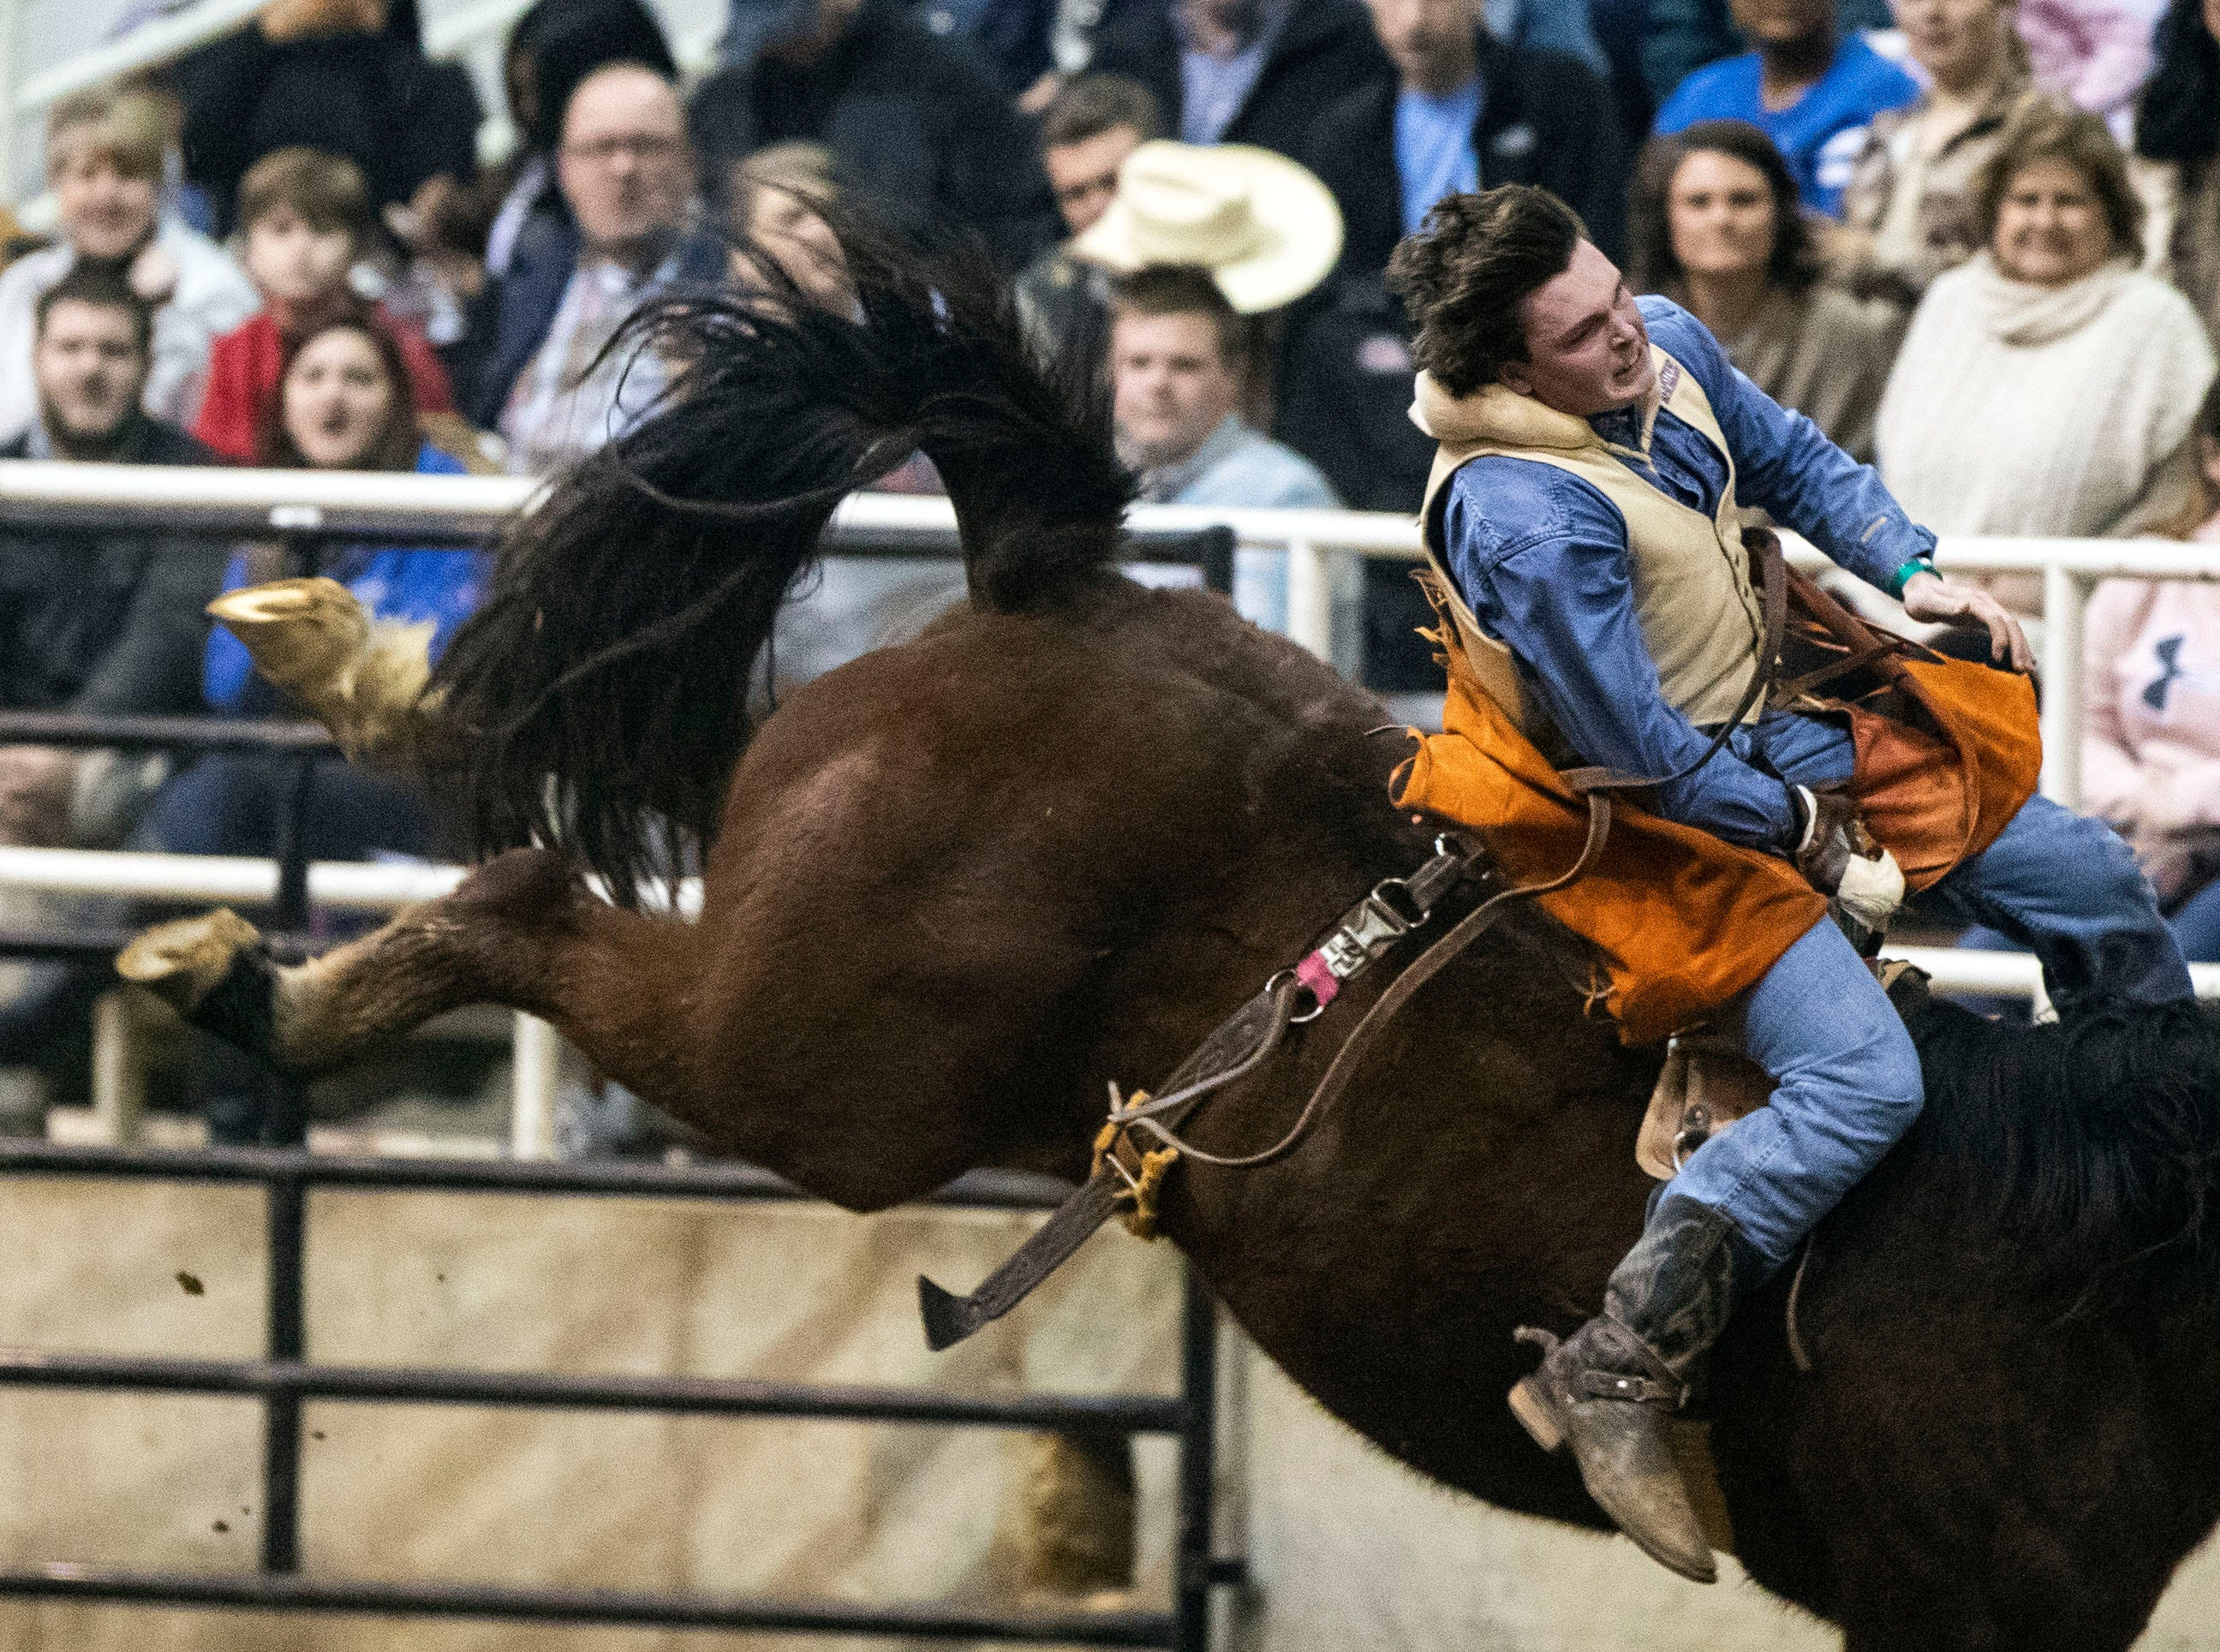 The 2018 AutoZone Liberty Bowl Professional Rodeo featured top performers from around the country competing in events such as Bull Riding, Bareback Bronc Riding, Steer Wrestling and Barrel Racing, inside the Agricenter Show Place Arena.